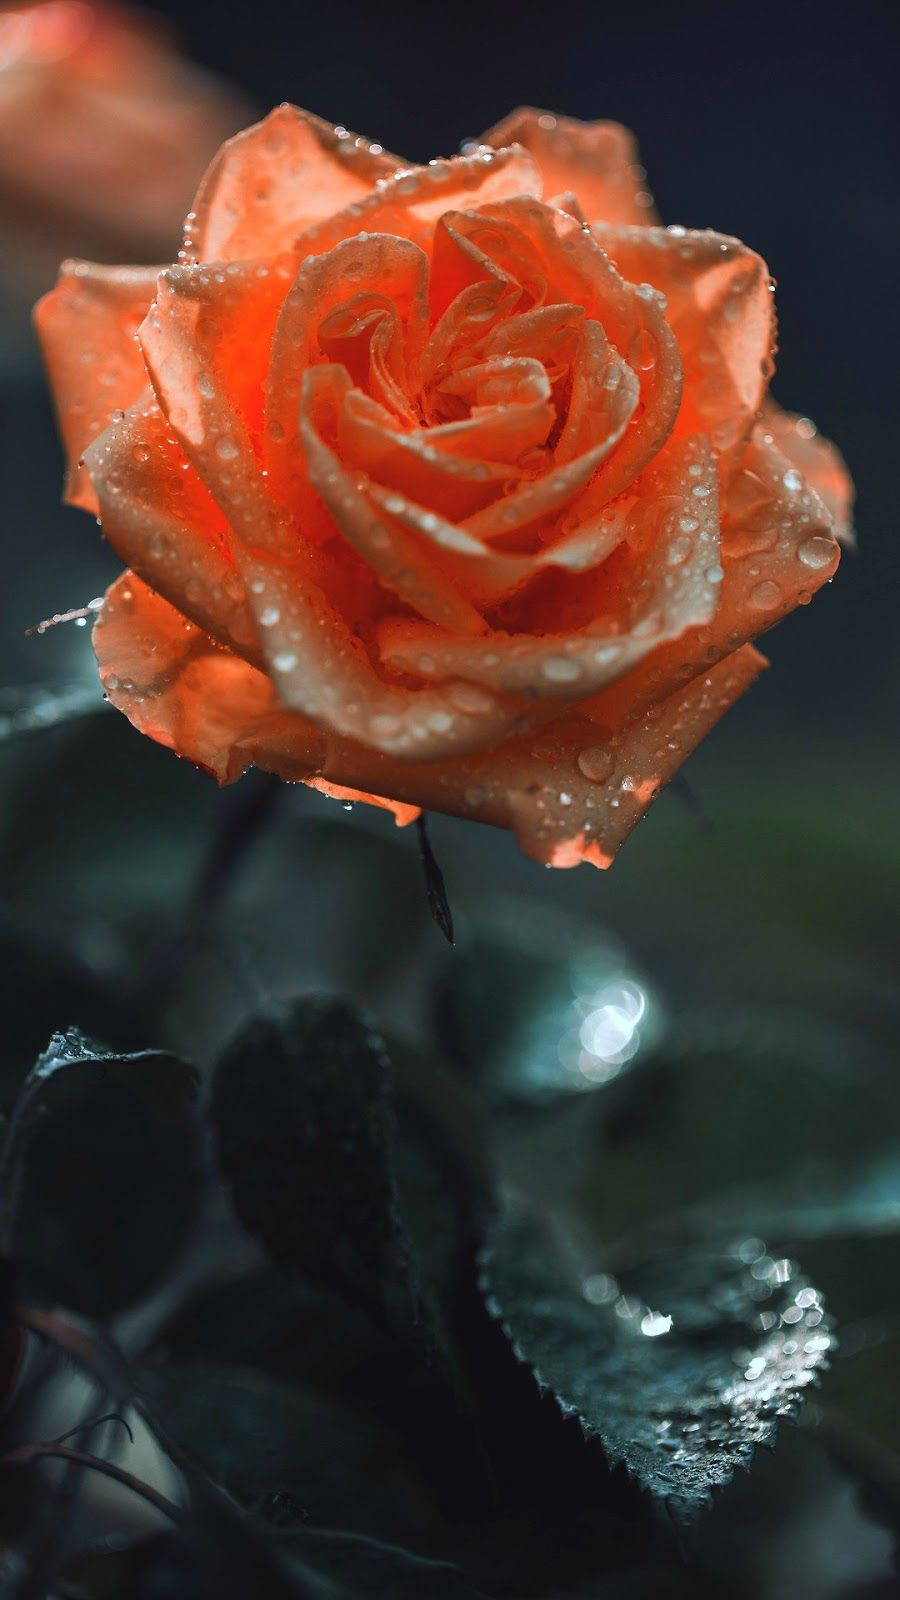 Orange Rose Wallpaper Iphone Android Flower Background Iphone Hd Flowers Rose Wallpaper